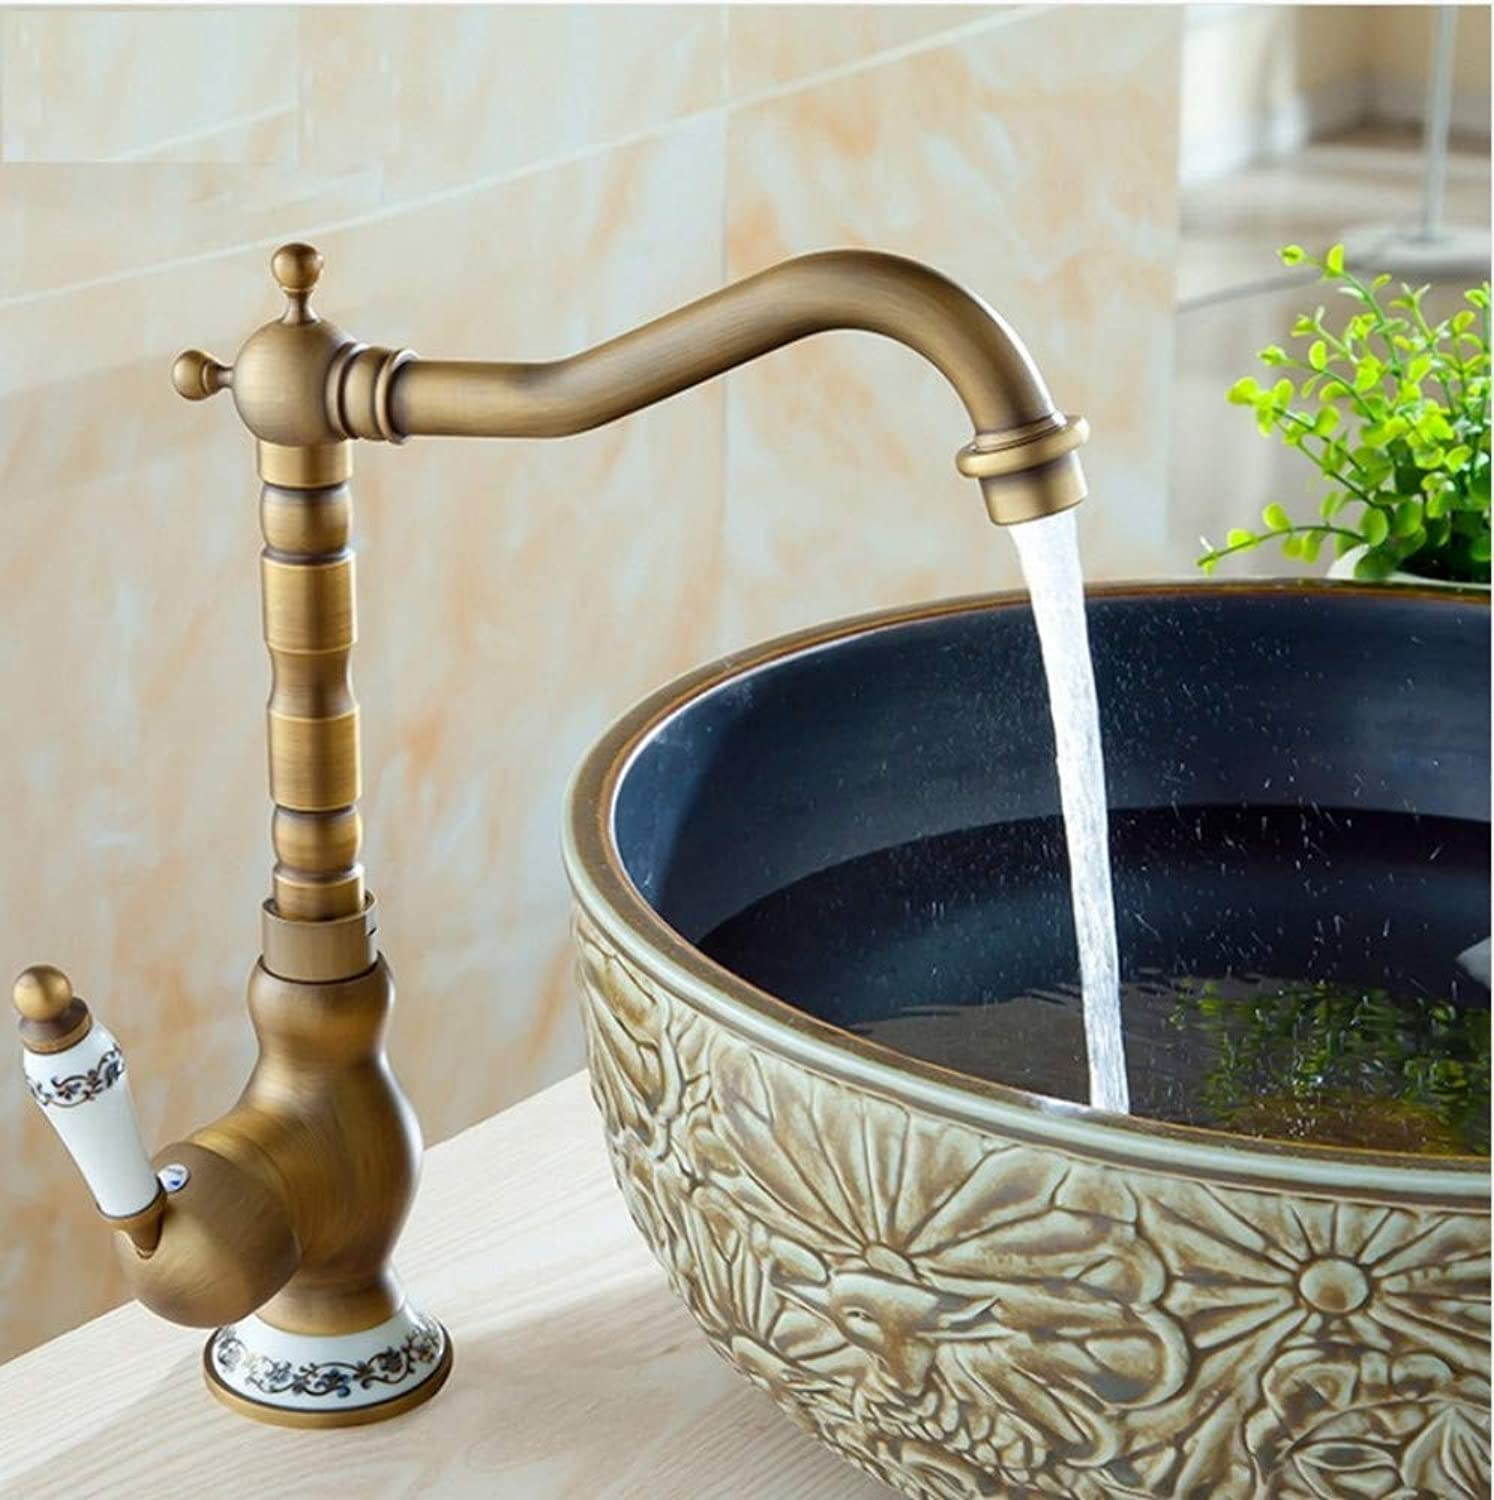 Dwthh Bathroom Sink Faucet Antique Bronze Bath Basin Crane Faucet Water Tap Single Handle Cold and Hot Water